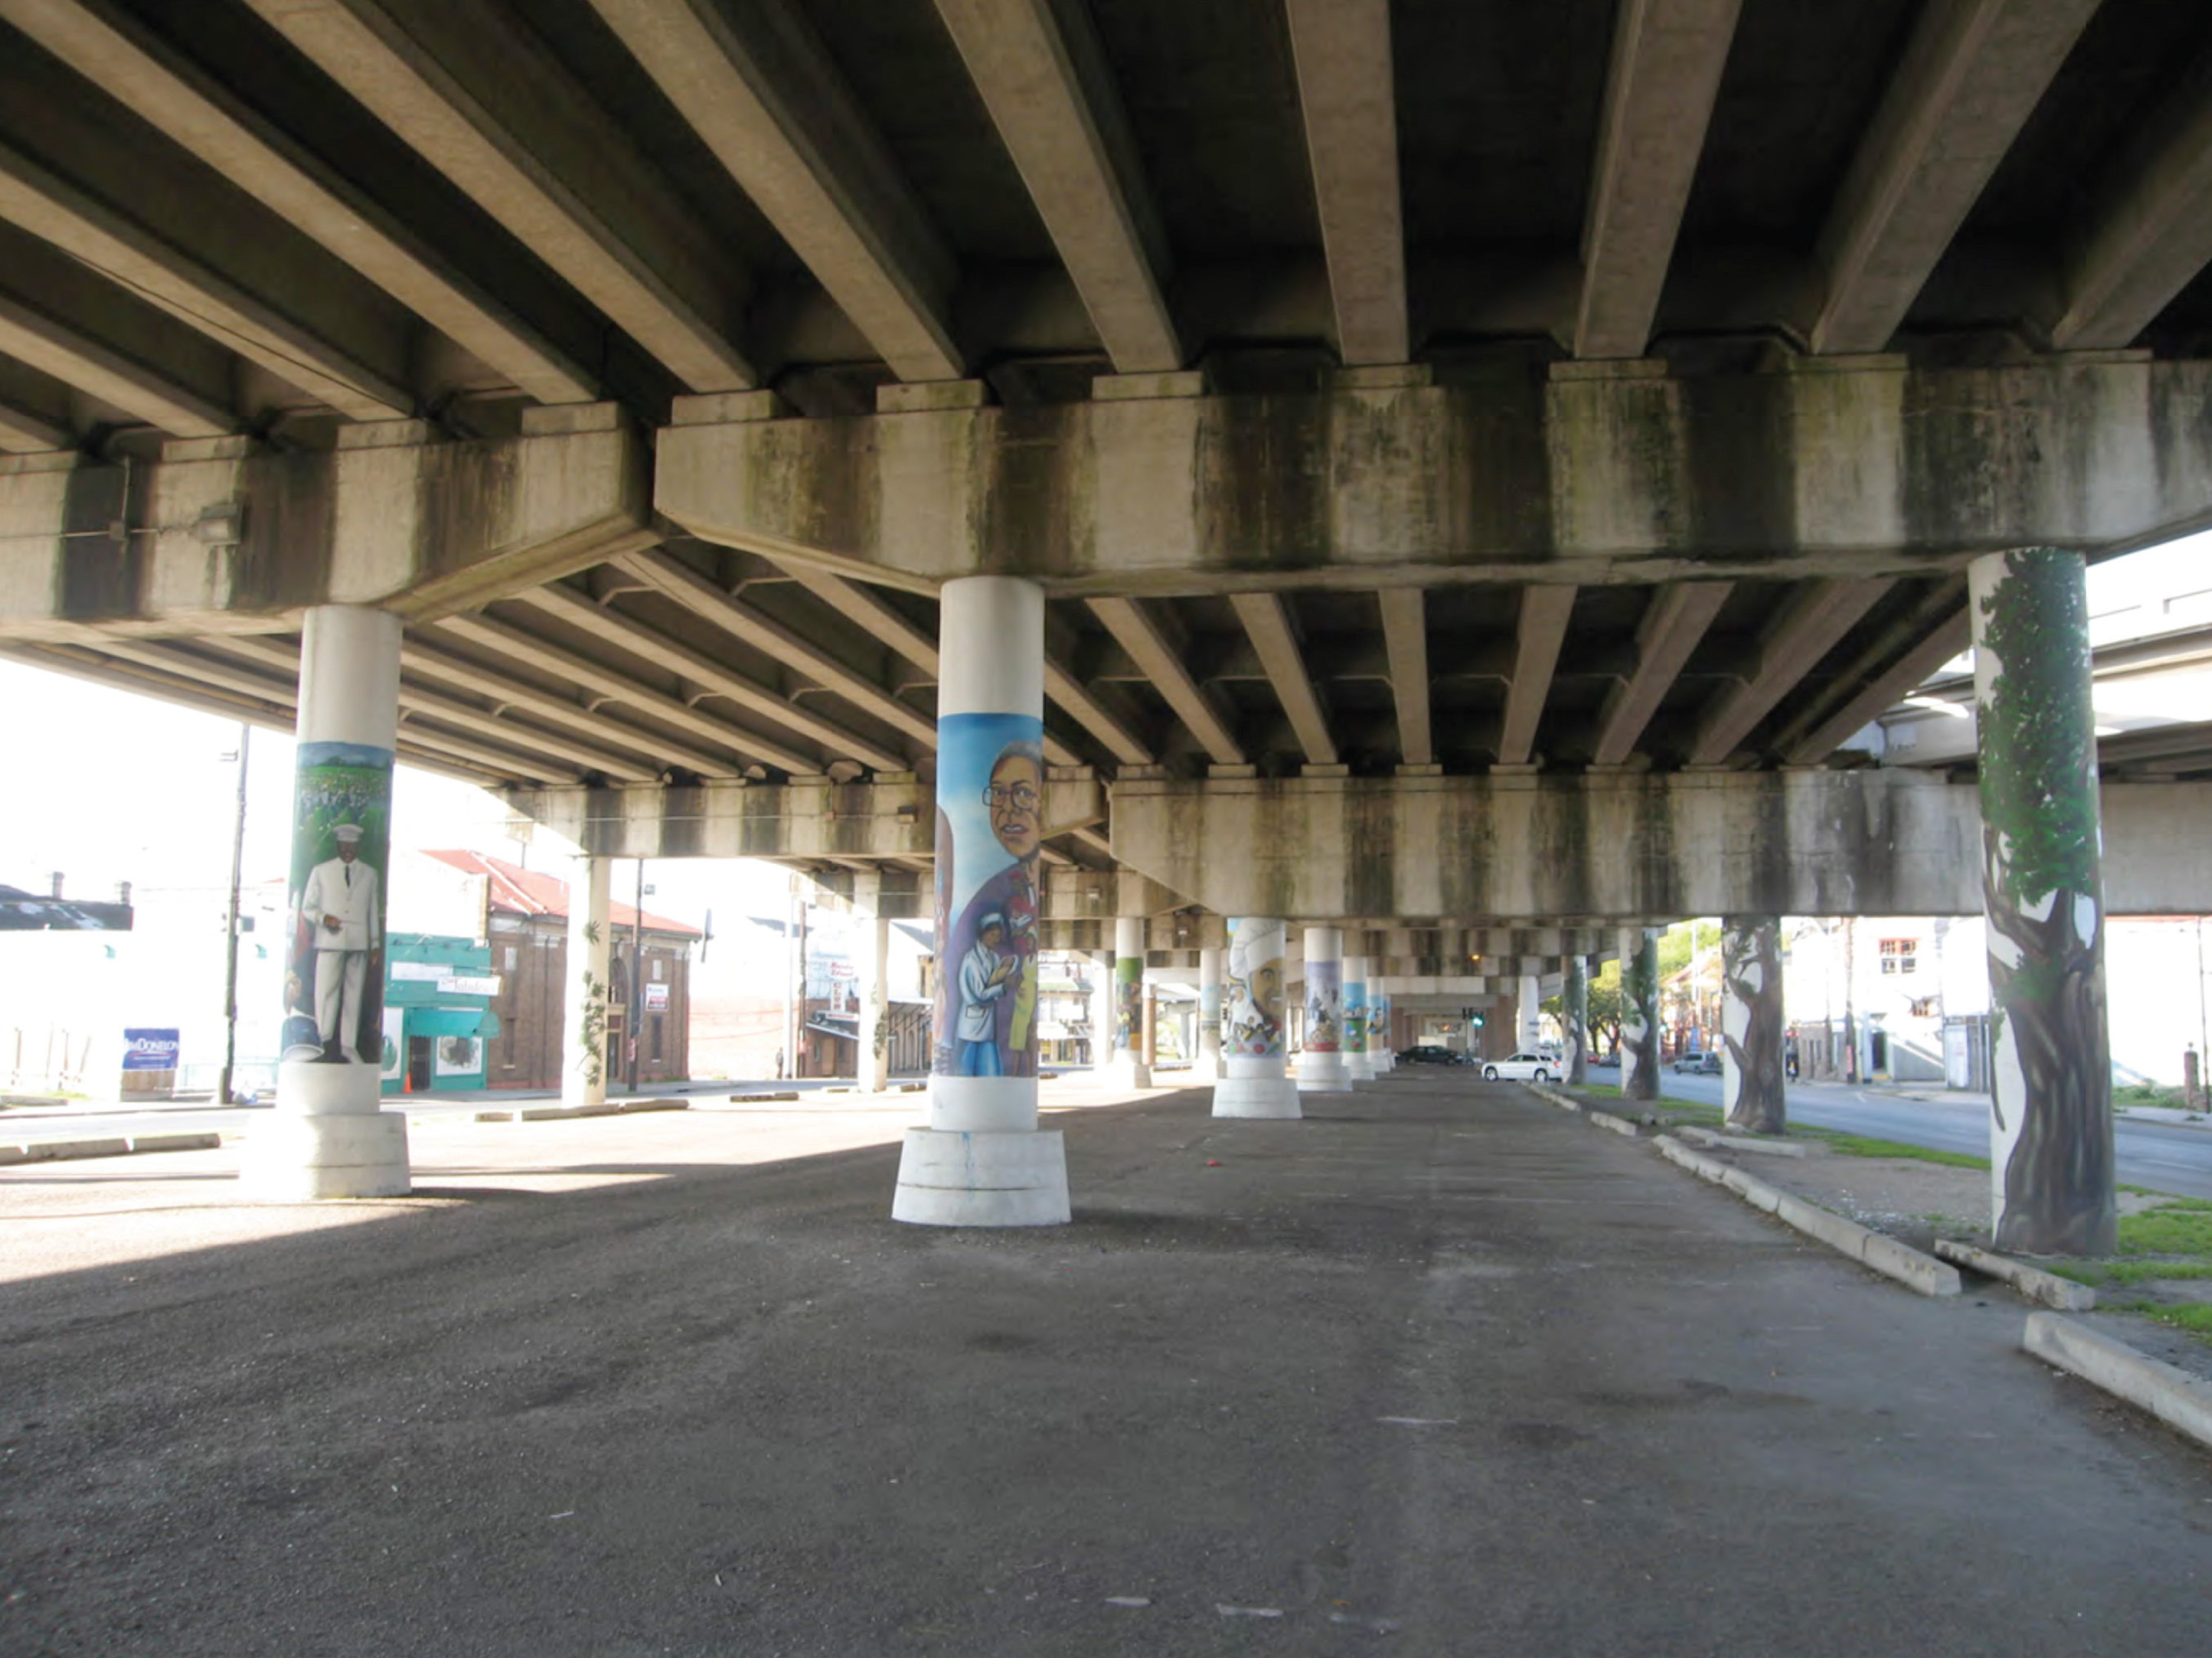 Under the overpass, 2010